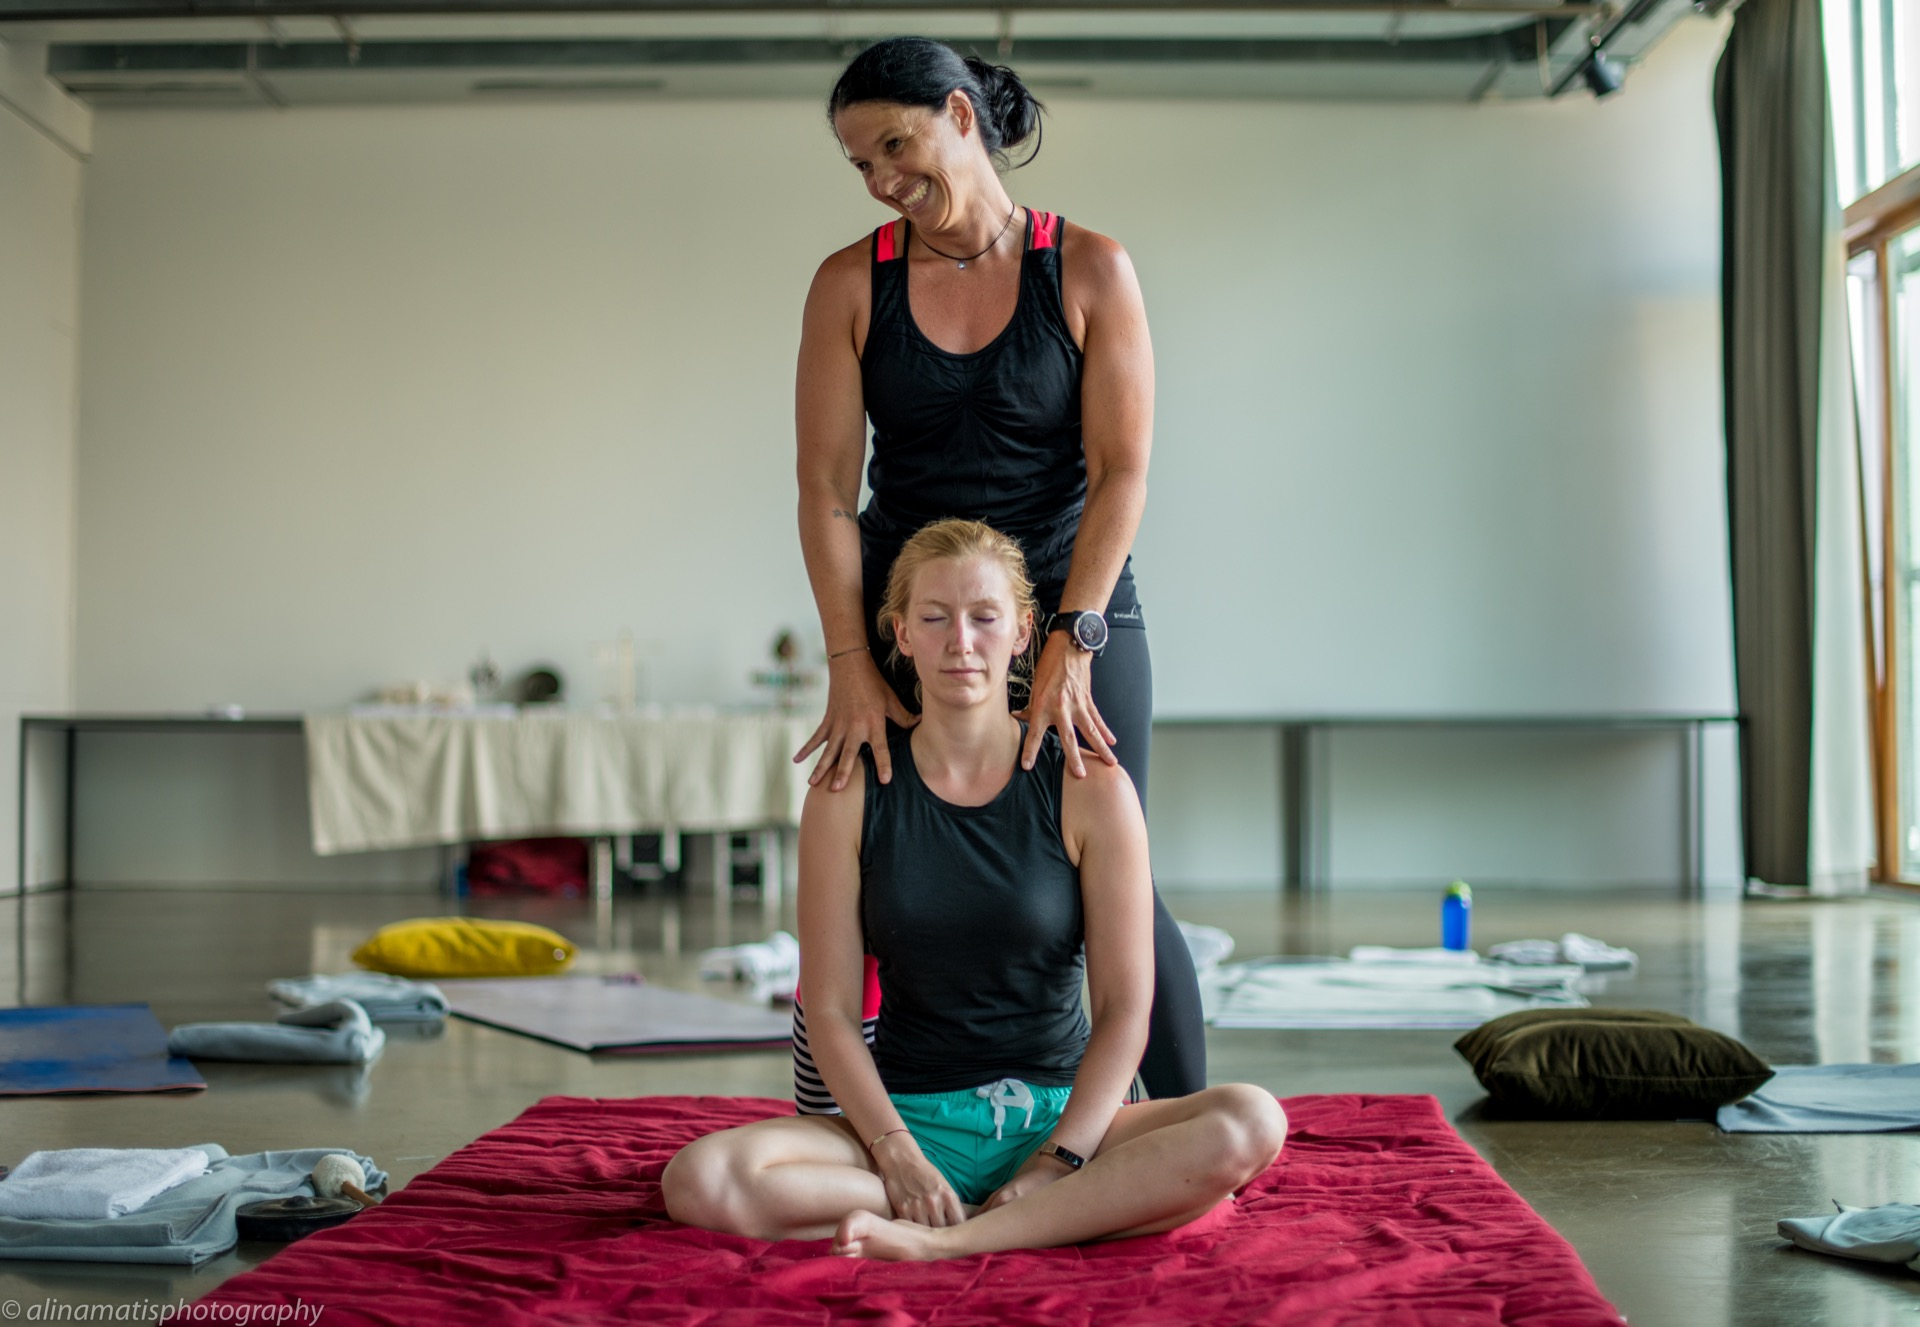 Hie-Kim-Friends-2018-Yoga-Retreat-Alina-Matis-Photography-086 - Hie Kim Yoga - Yoga Retreat - Yoga Workshops und Reisen